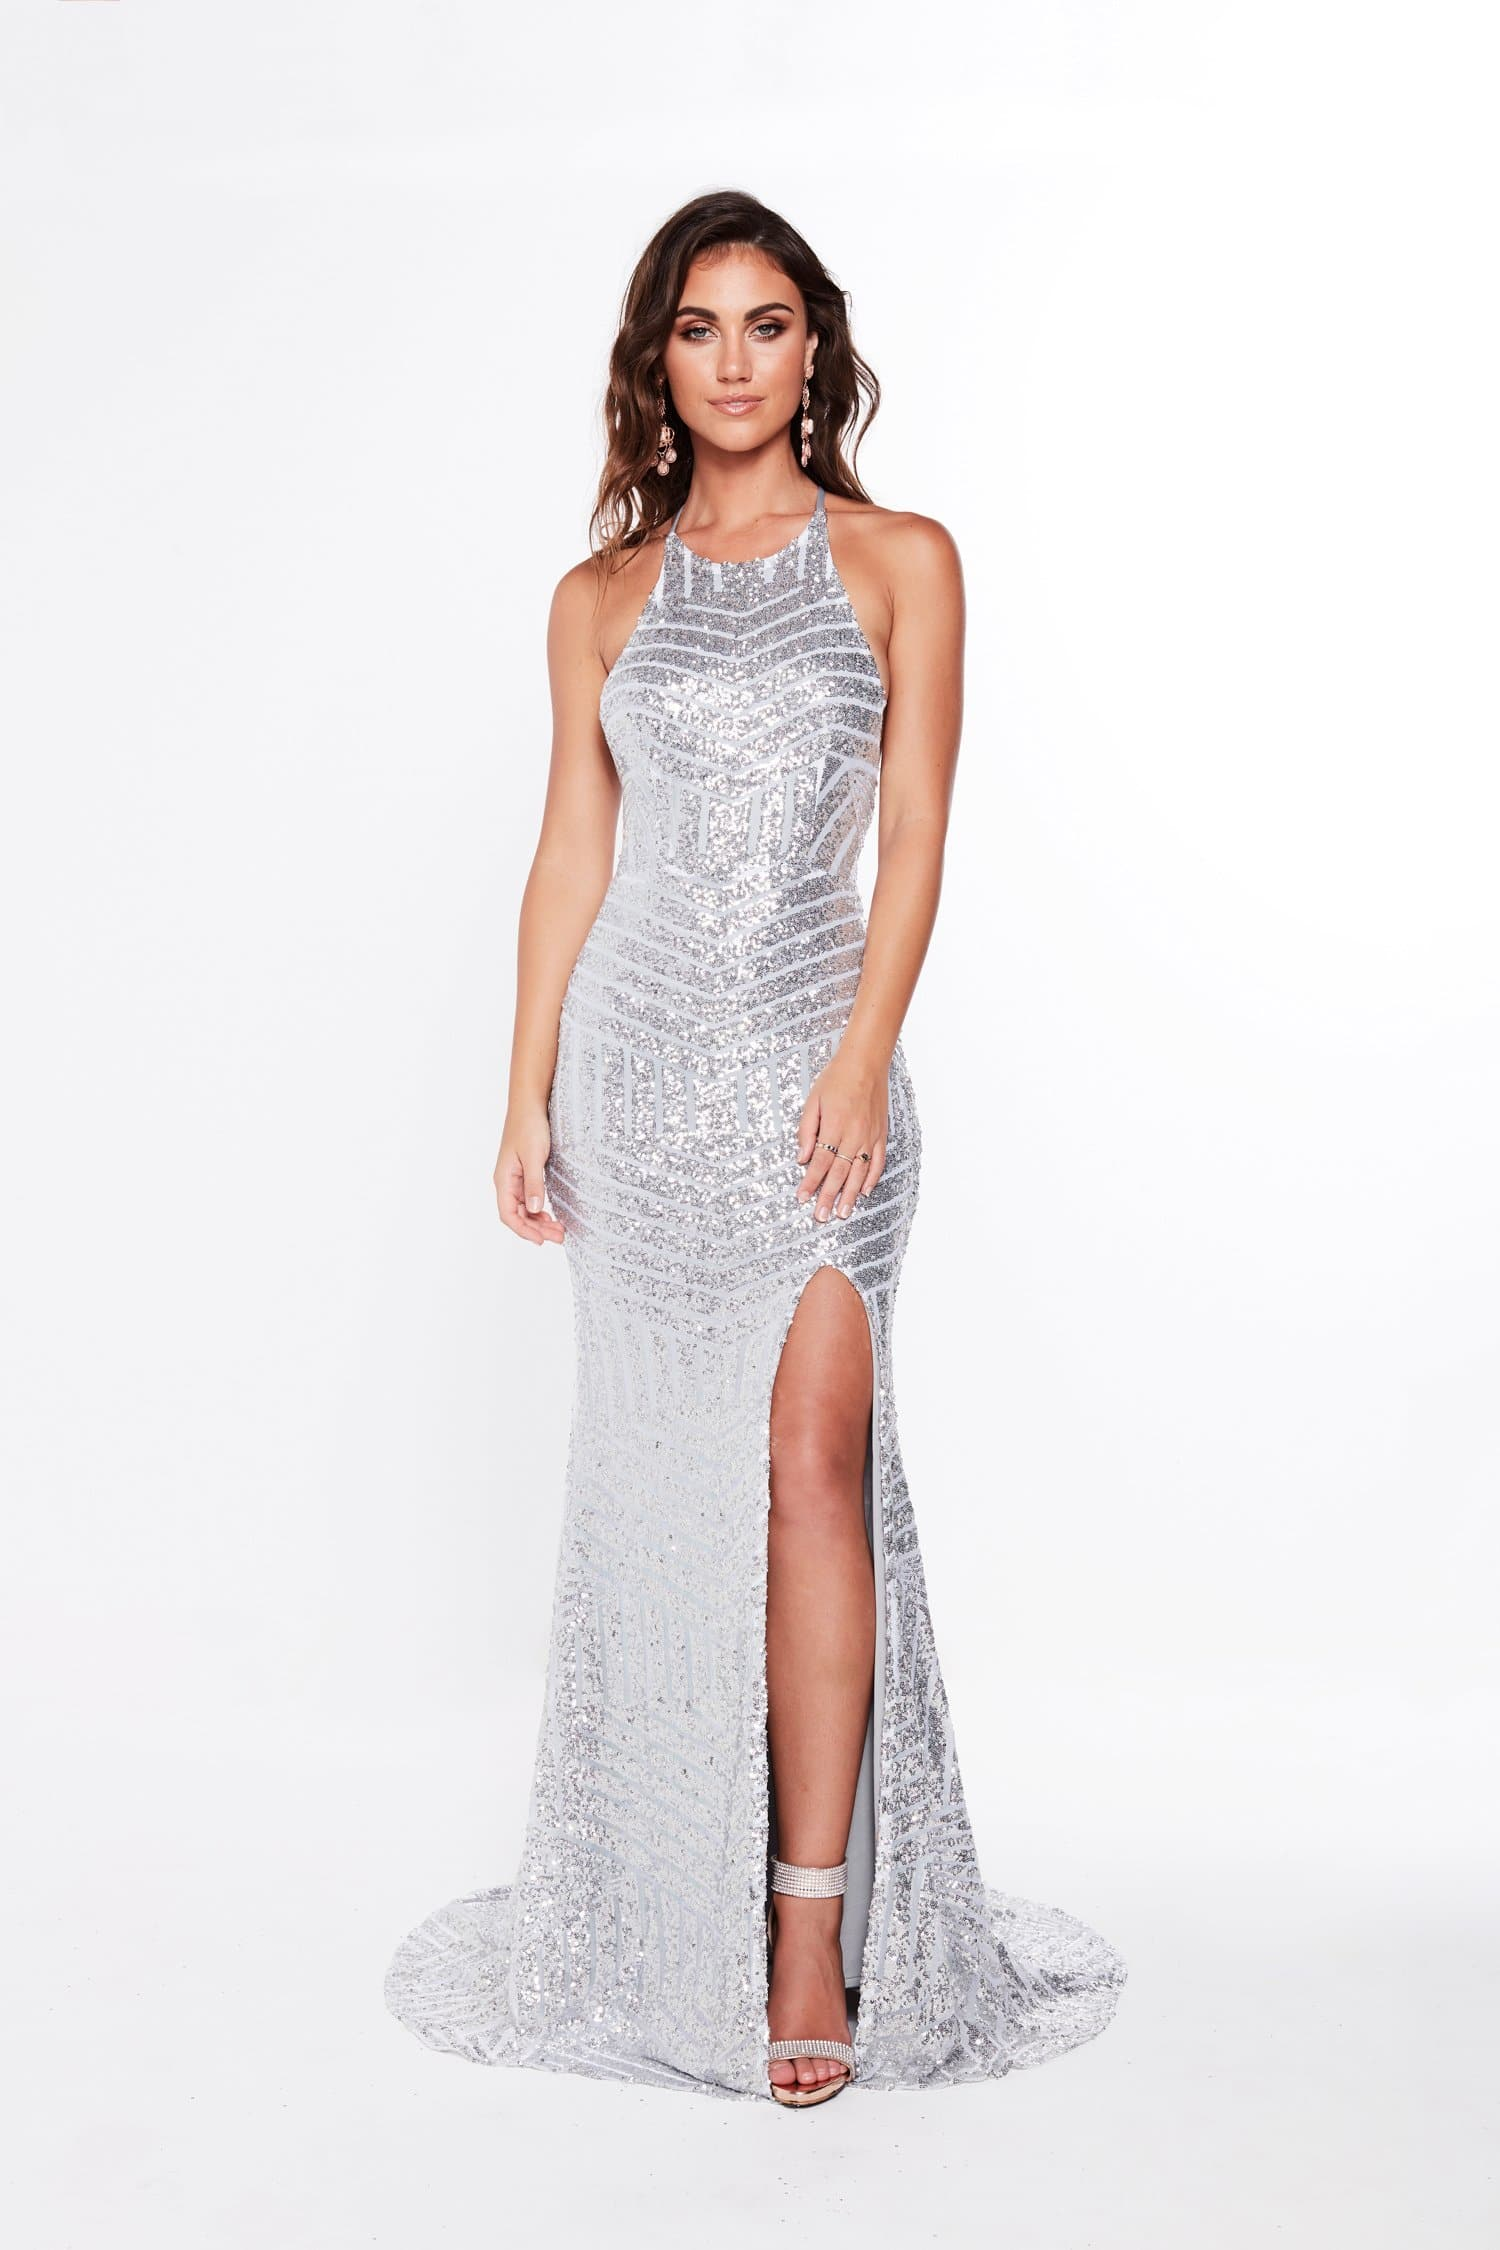 A&N Cosmo - Silver Sequins Gown with High Neckline and Lace Up ...